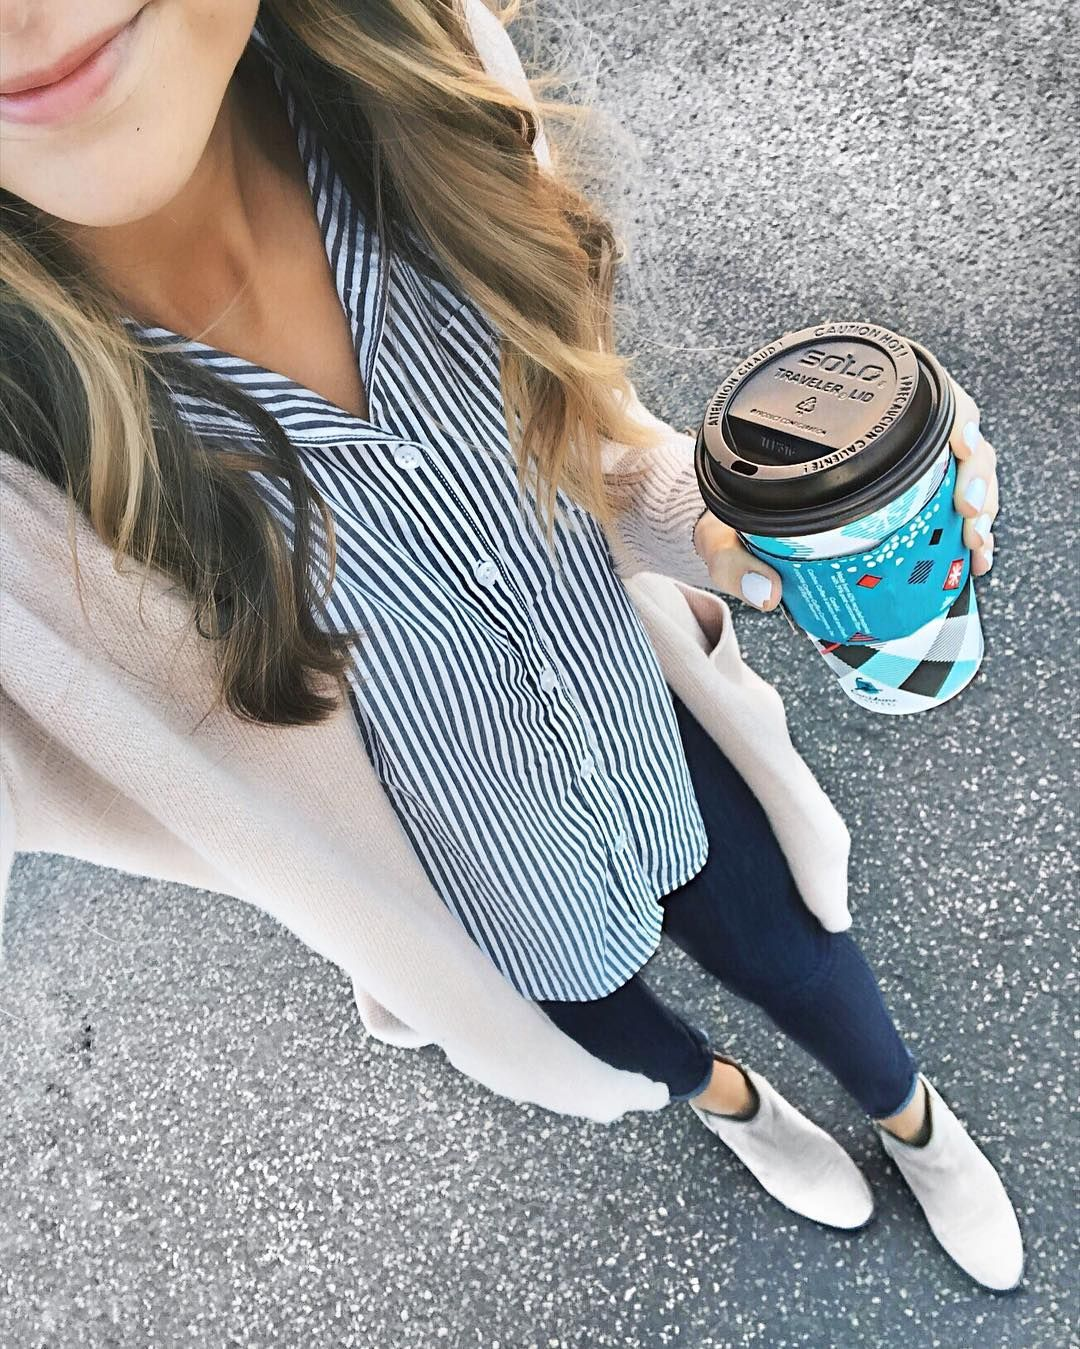 Can't believe Christmas is almost here!!  So excited! Haven't started wrapping presents yet though...  On another note Any of my other Midwest friends bummed they didn't bring back the Chile Mocha at @cariboucoffee this year?!  At least their almond milk lattes suffice!  || http://liketk.it/2pX4q @liketoknow.it #liketkit